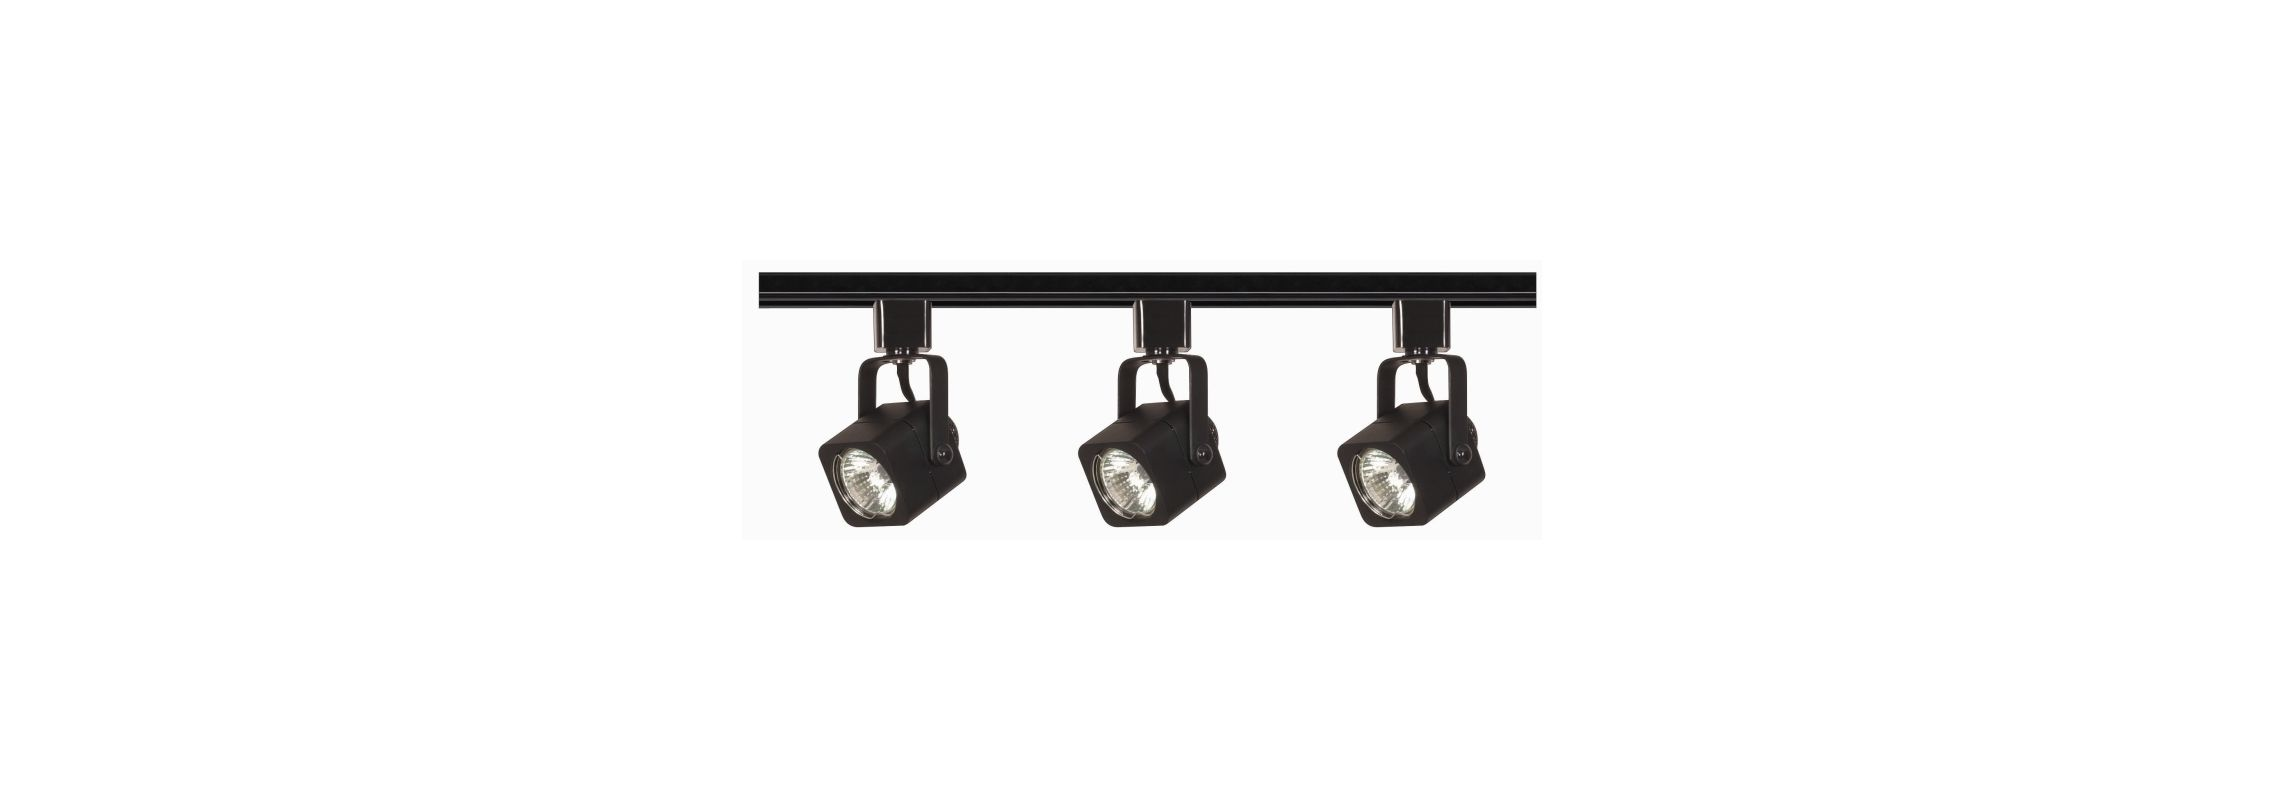 Nuvo Lighting TK346 Three Light MR16 Square 120V Track Kit Black